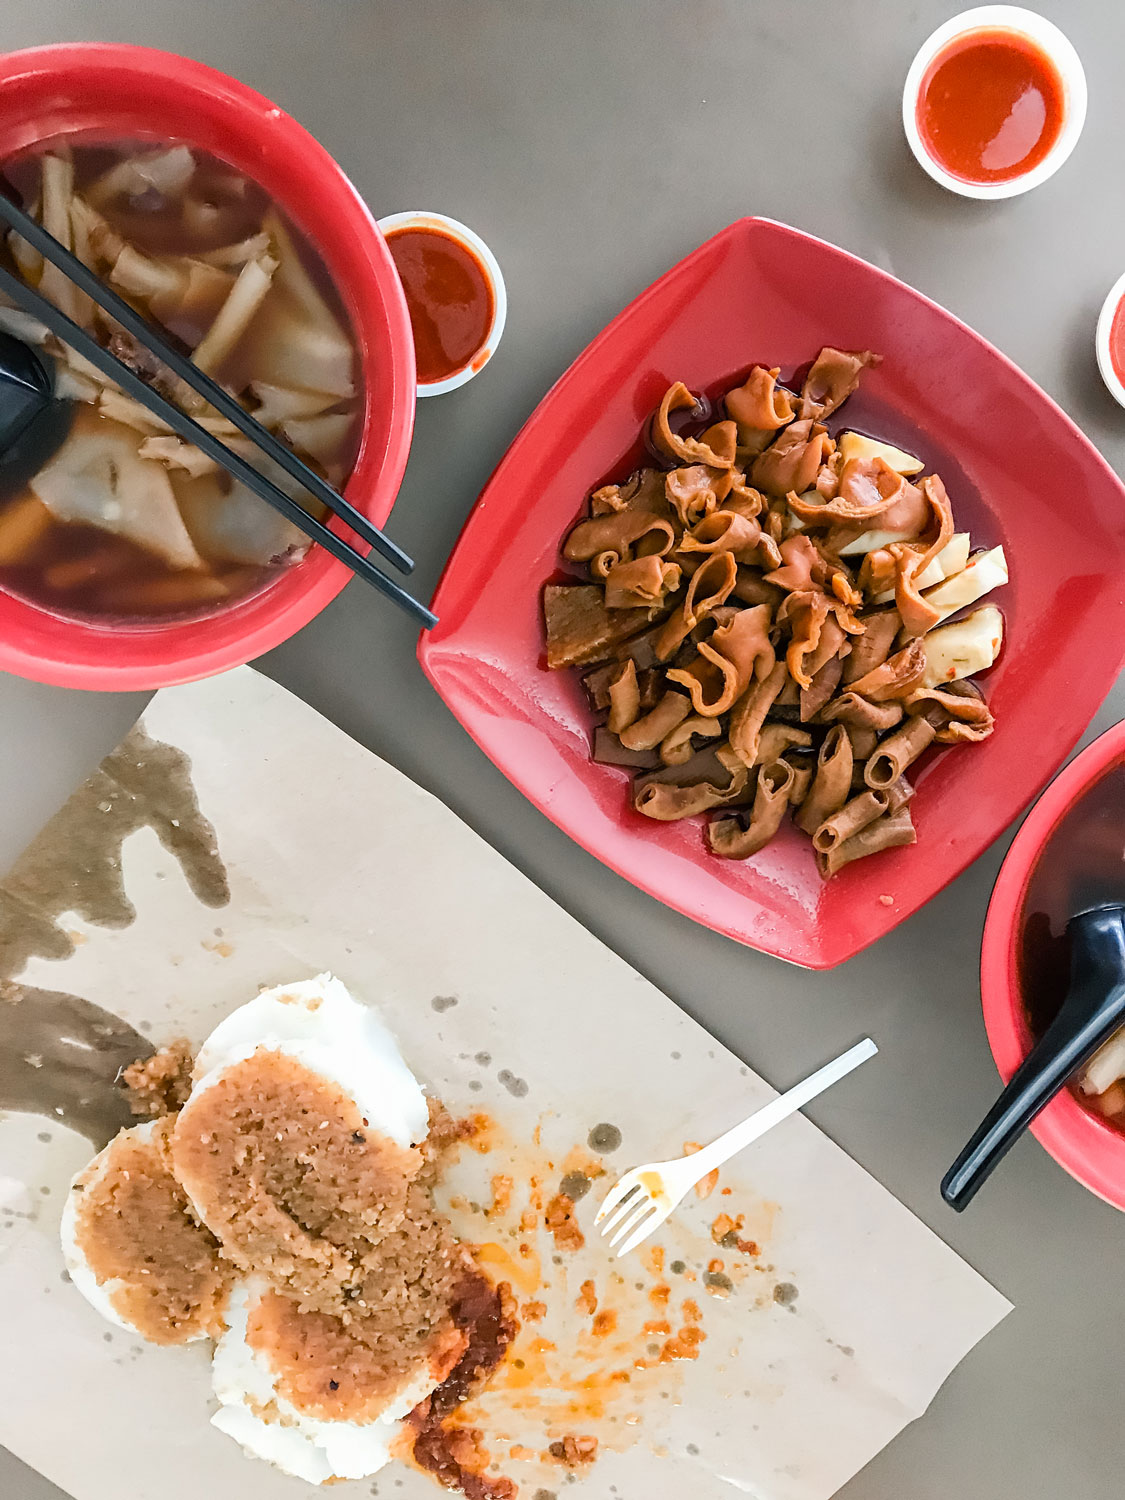 Unique Asian foods resting on a table.